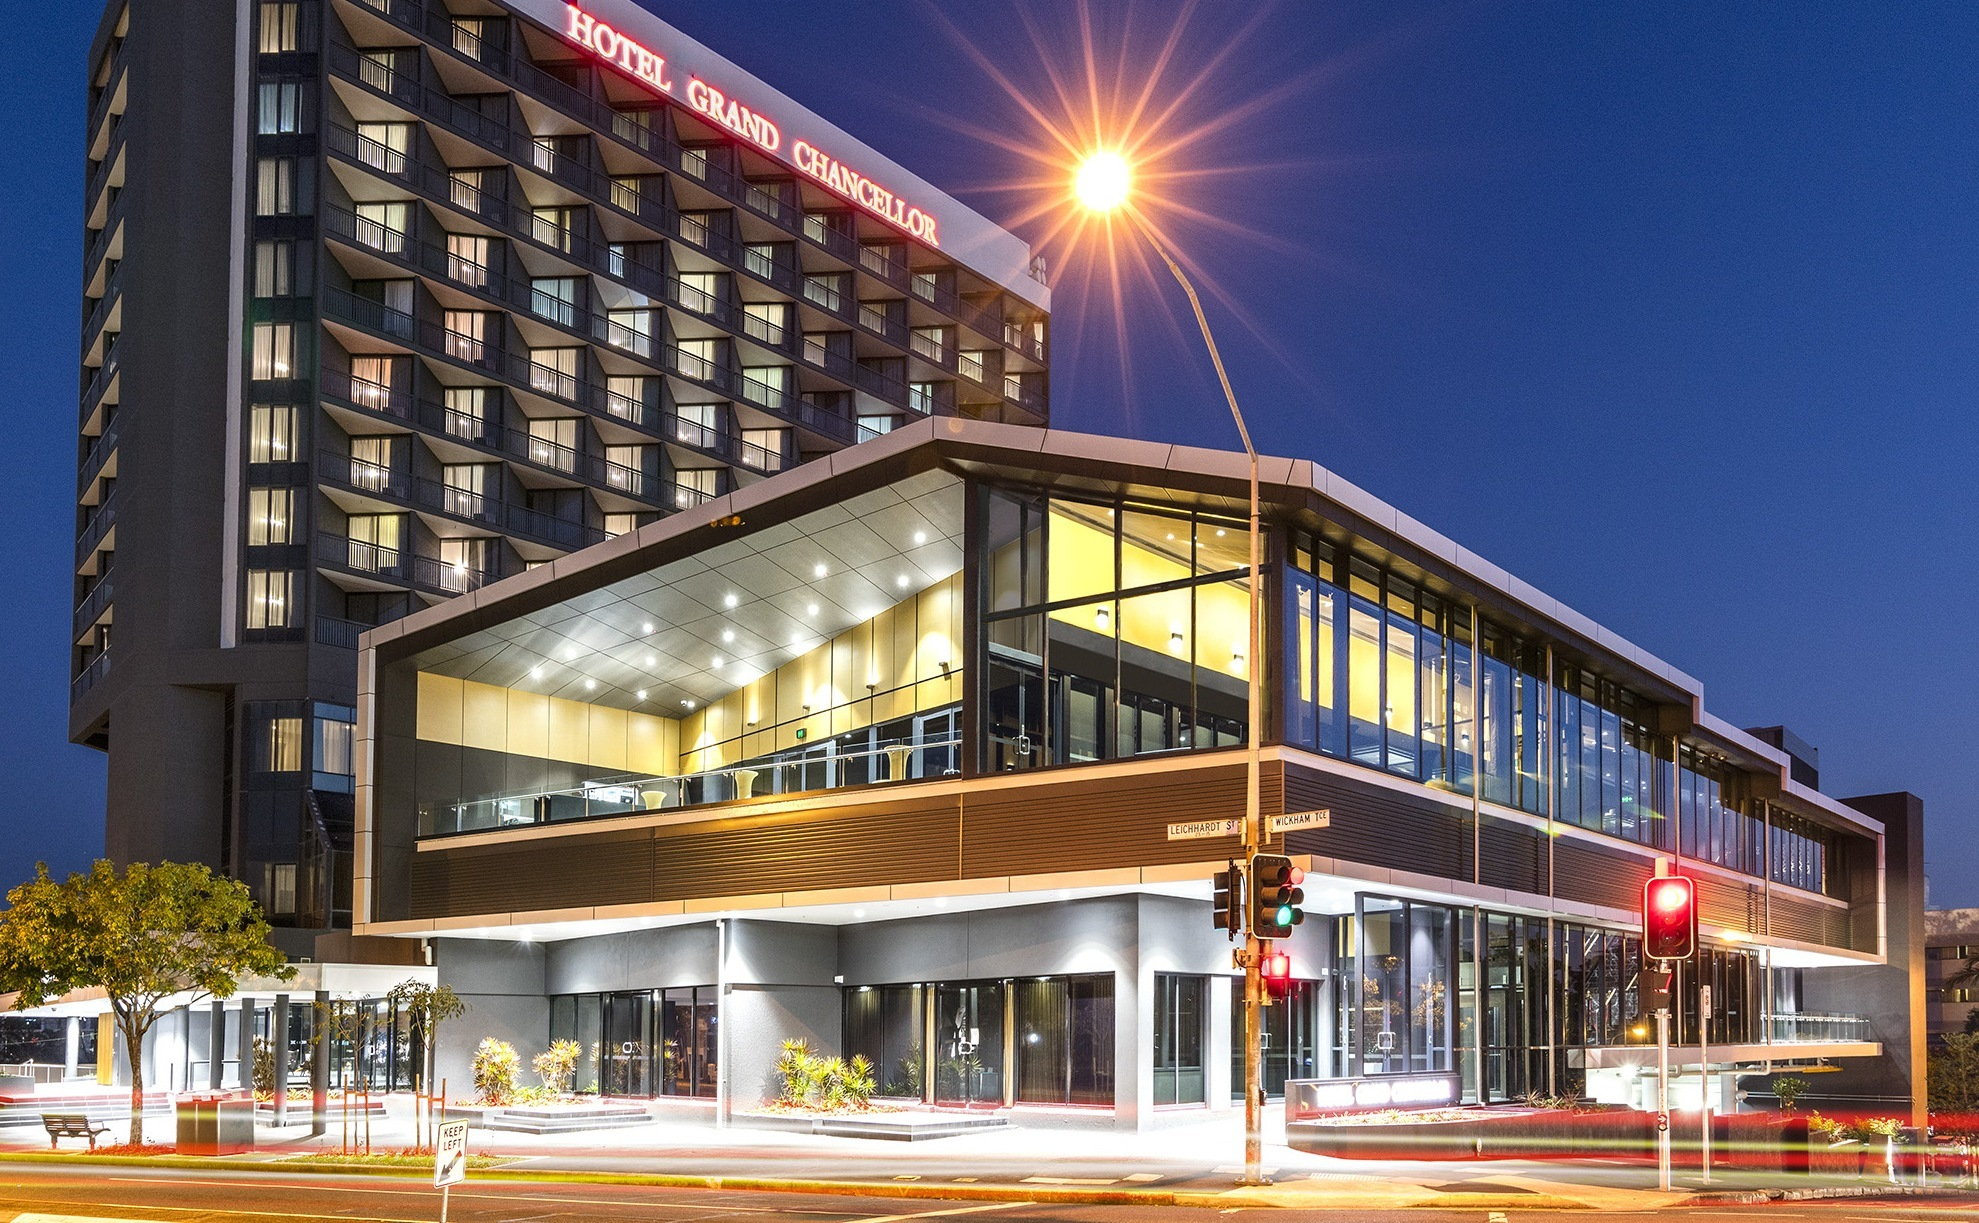 New conference centre for Brisbane - The Nibbler